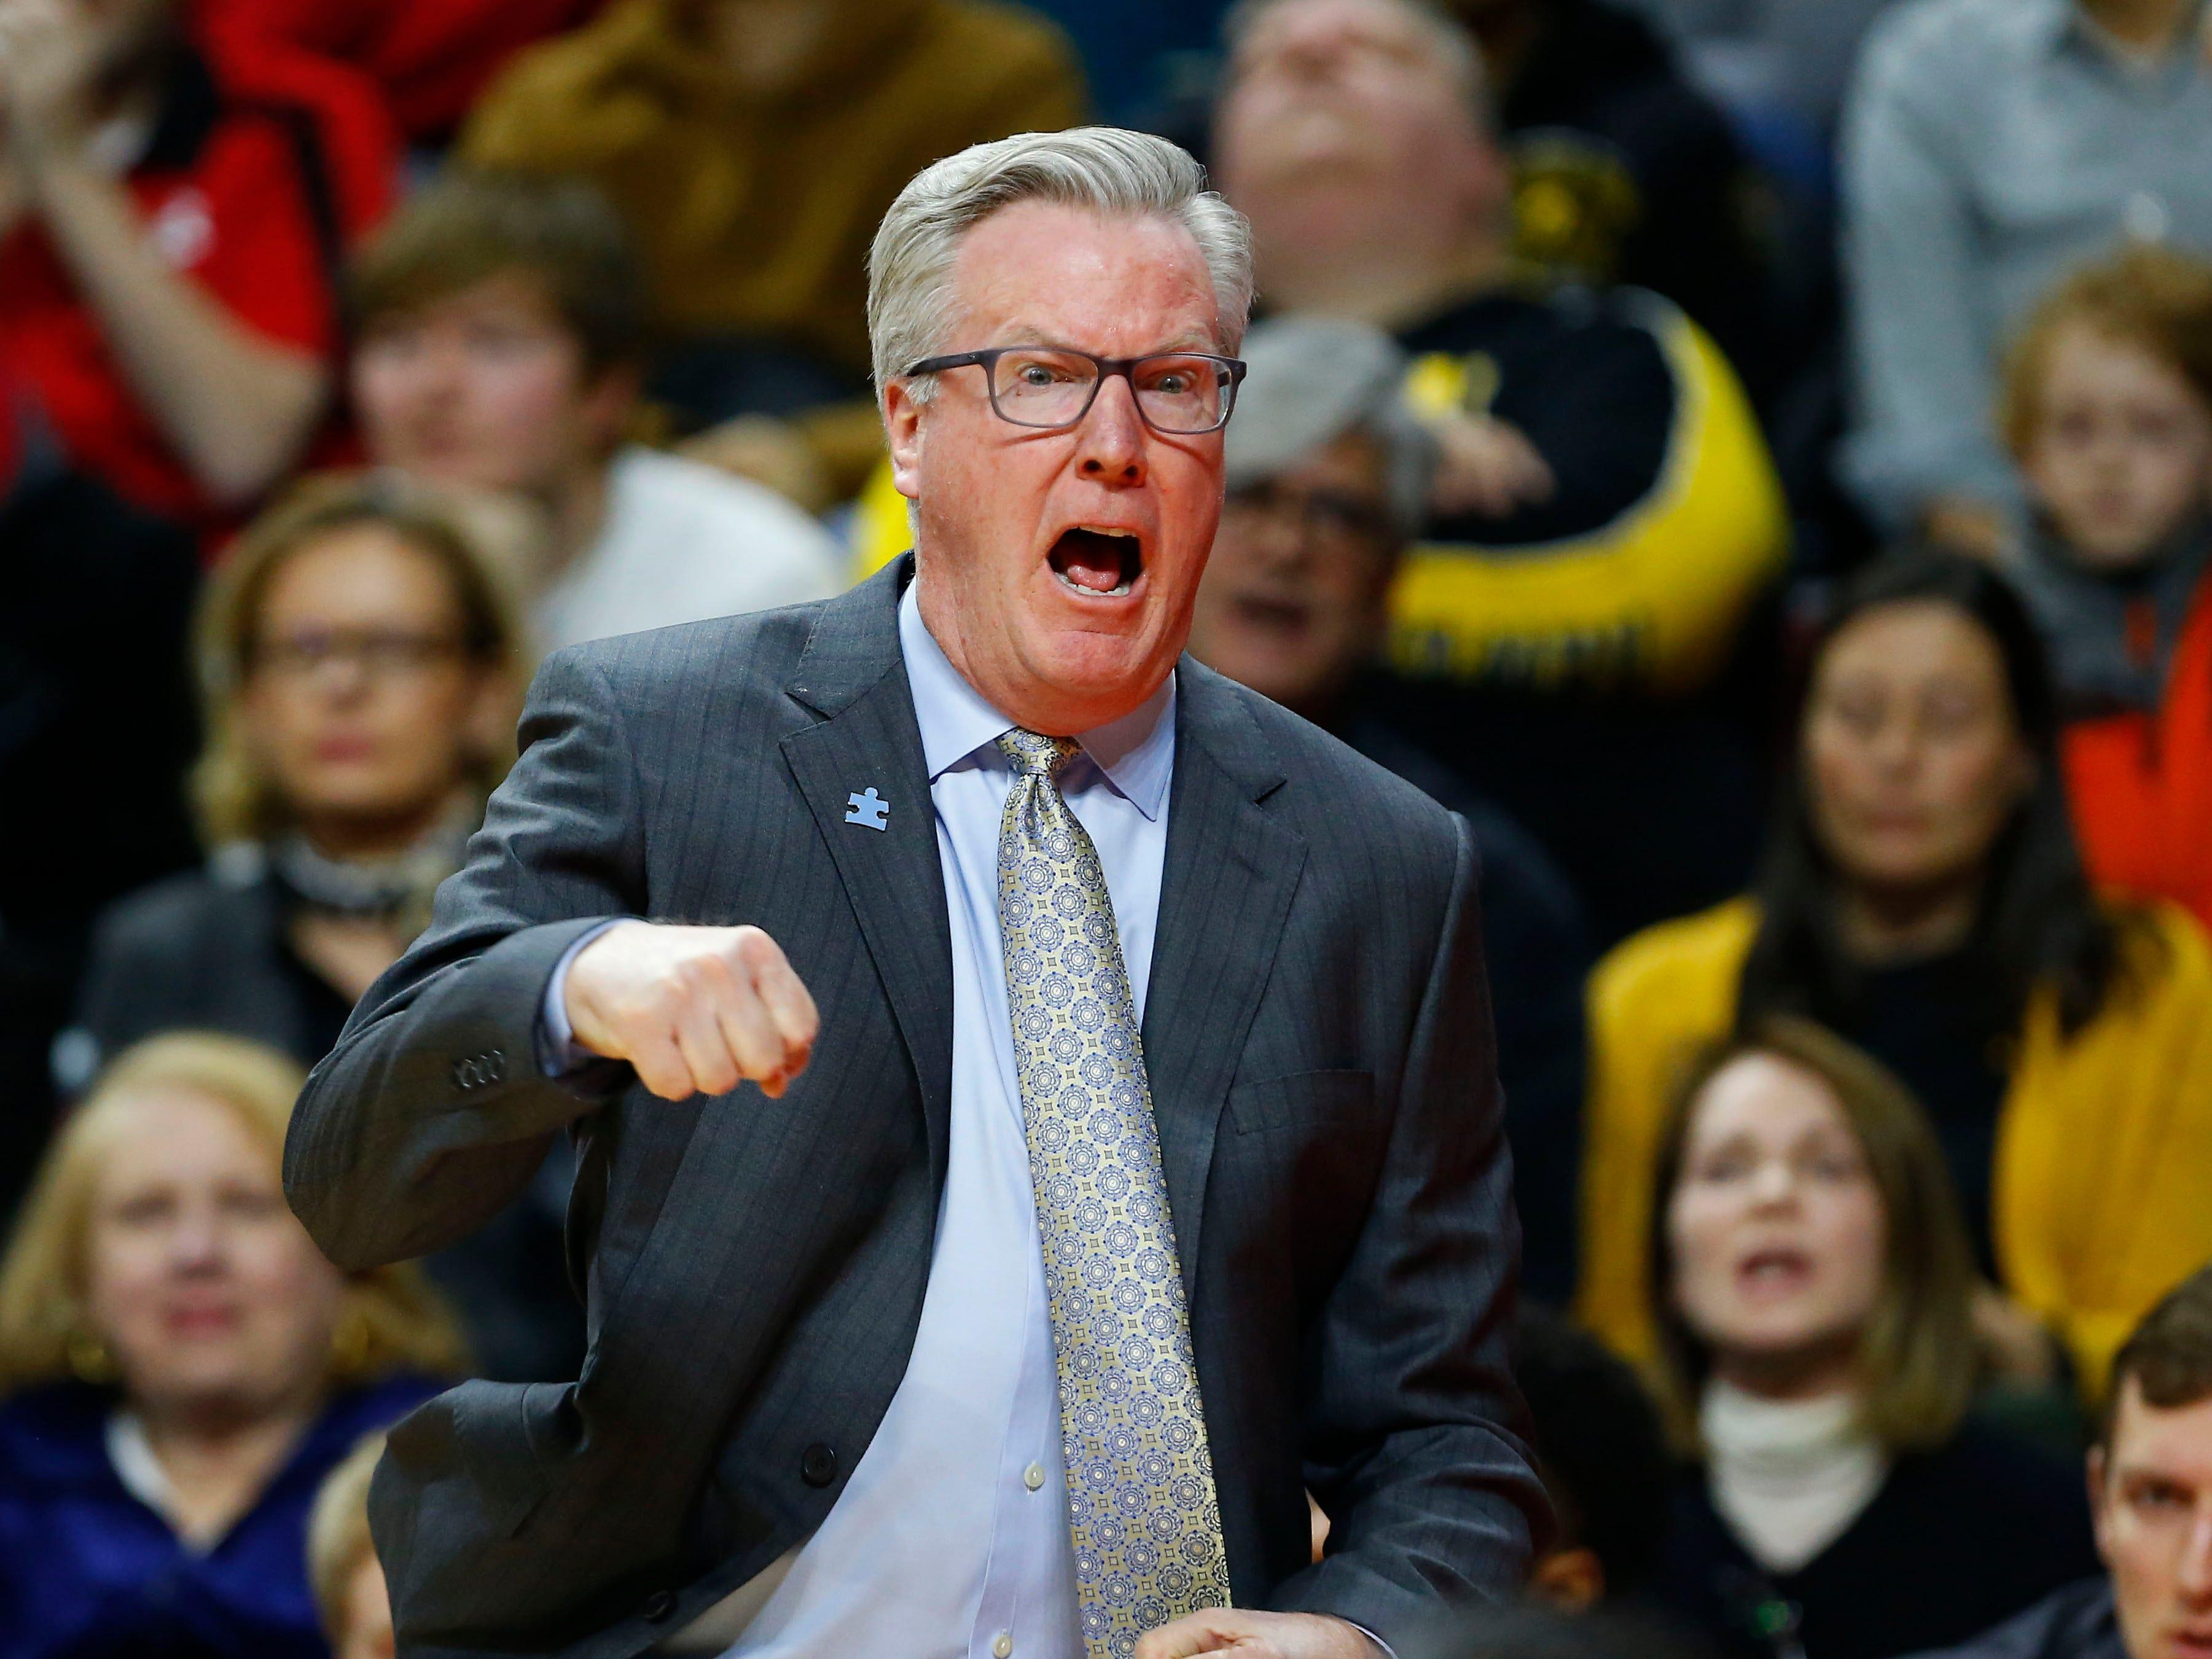 Iowa Hawkeyes head coach Fran McCaffery reacts to play against Rutgers Scarlet Knights during the first half at Rutgers Athletic Center (RAC). Mandatory Credit: Noah K. Murray-USA TODAY Sports